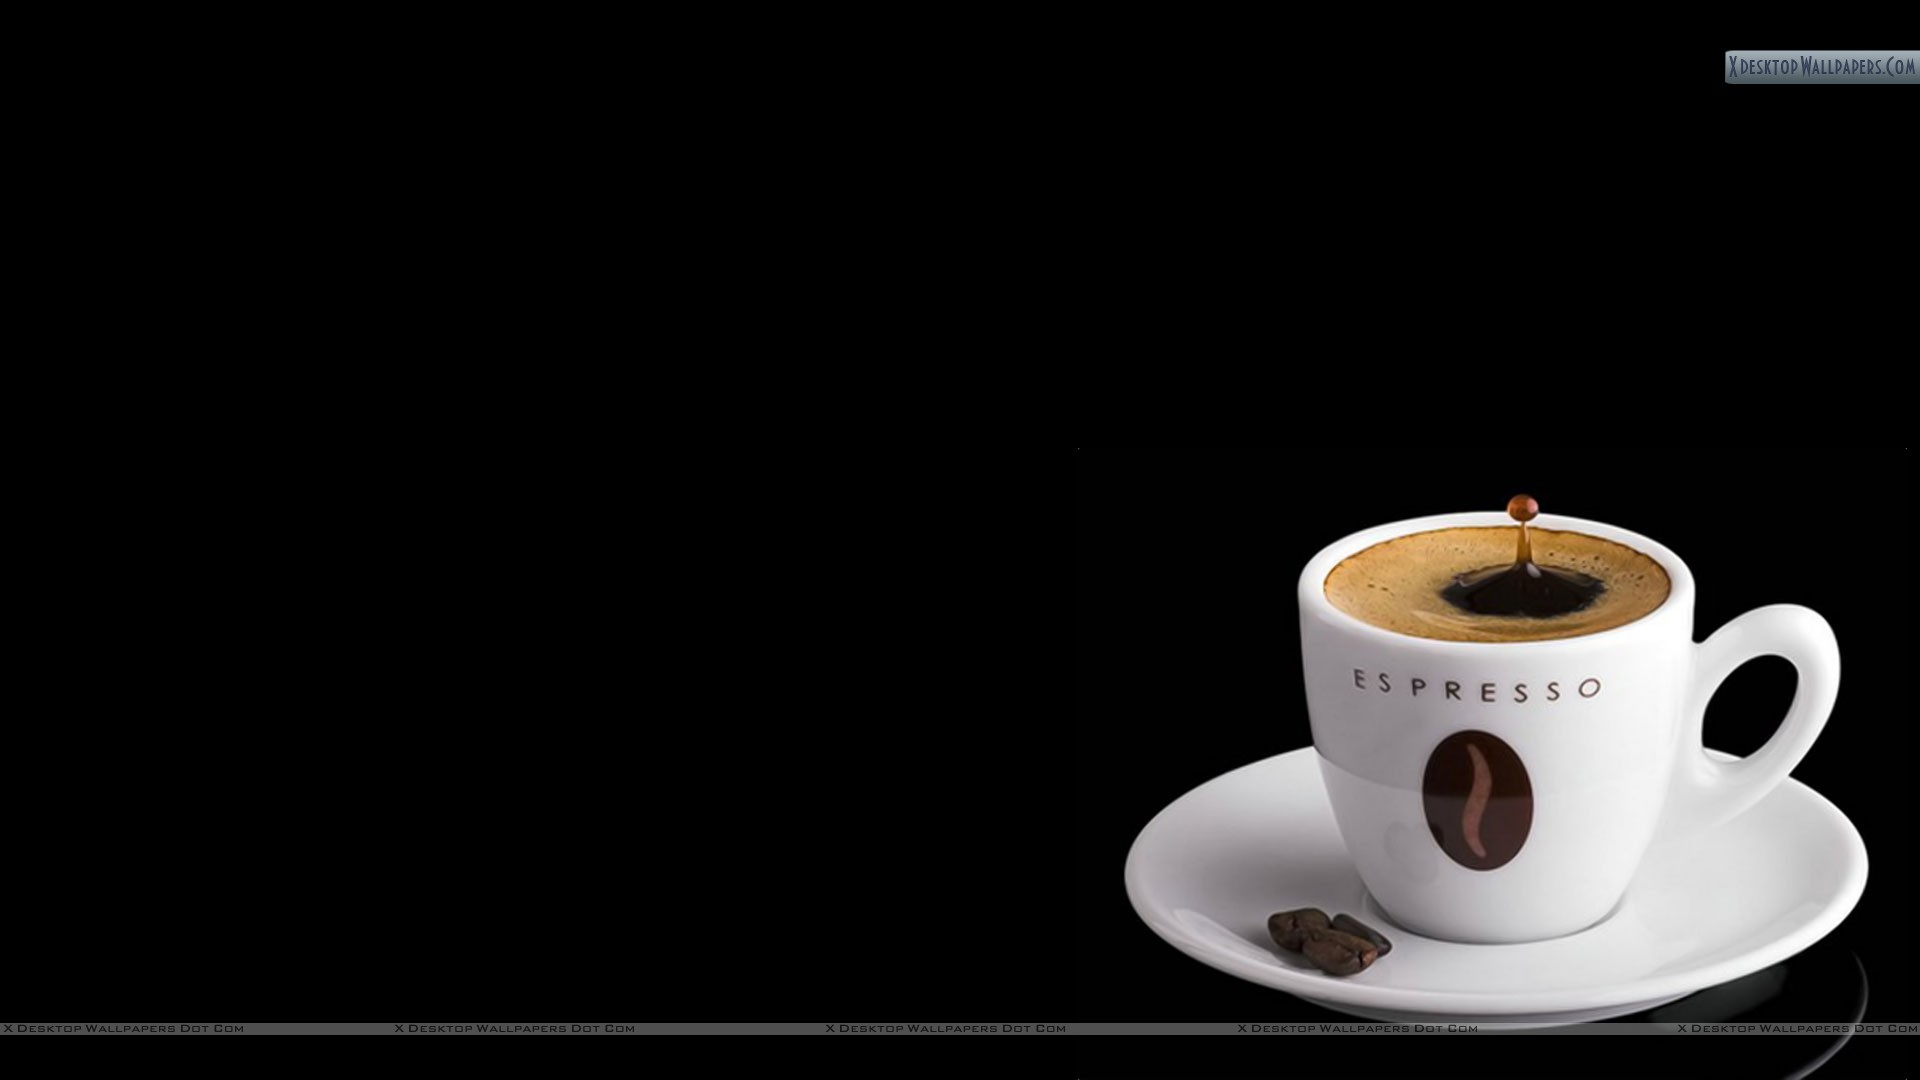 Espresso Coffee In White Cup With Beans Wallpaper 1920x1080